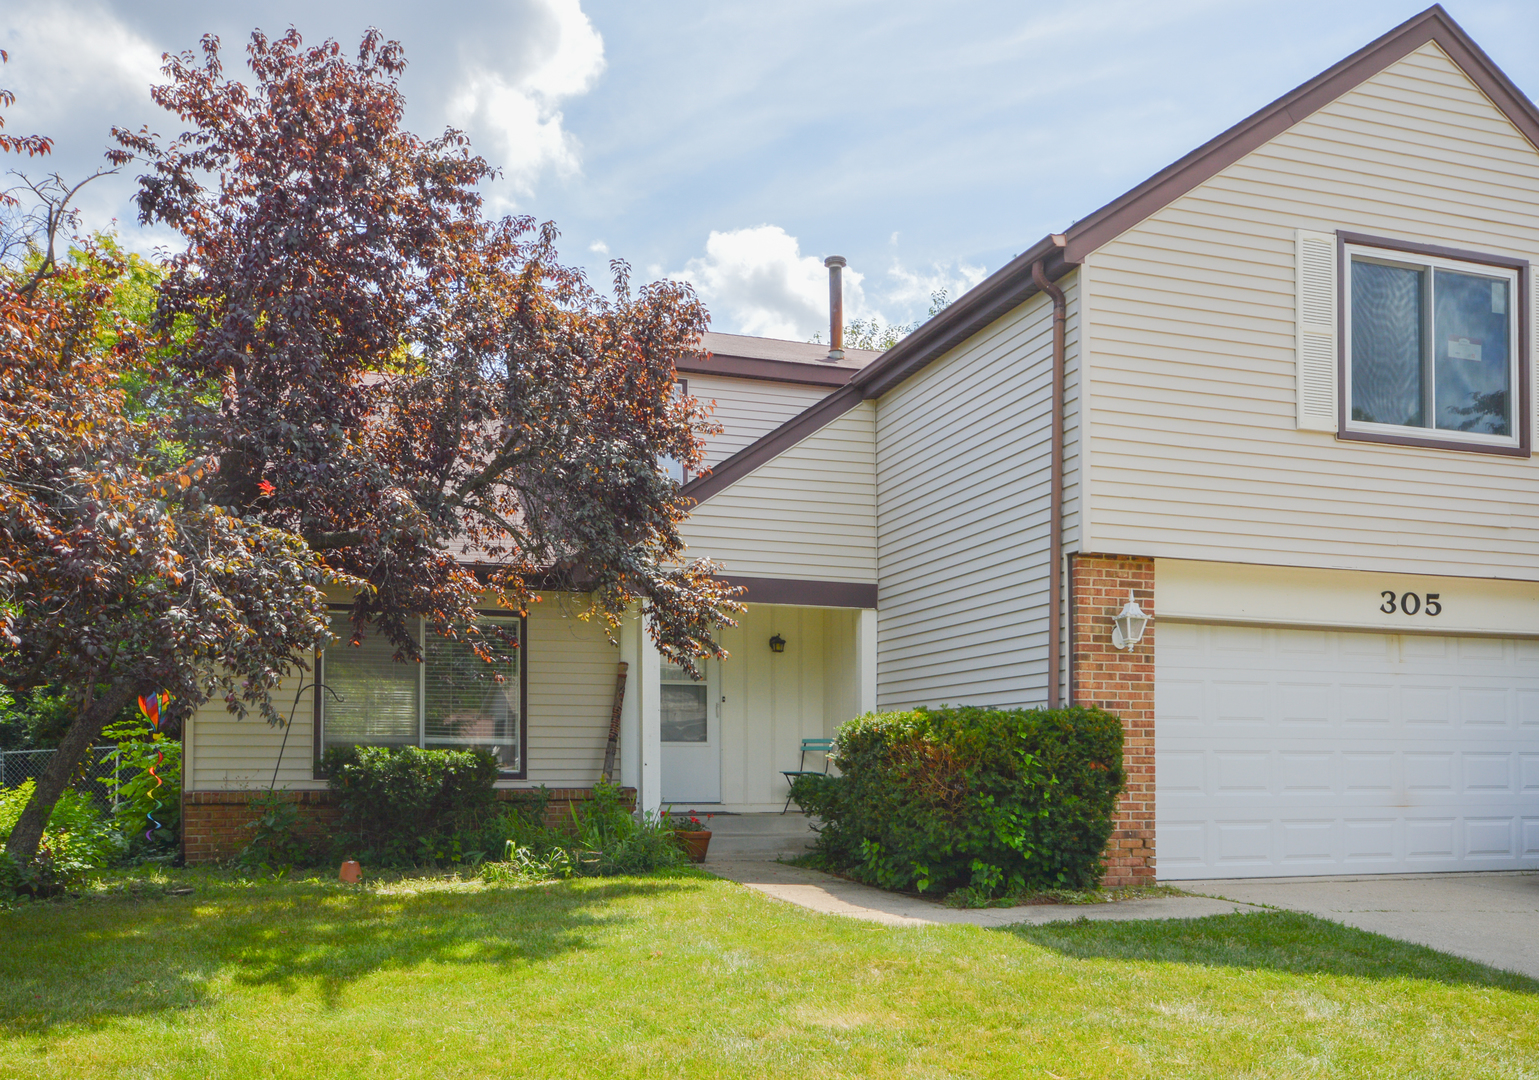 305 Horatio Boulevard, Buffalo Grove in Lake County, IL 60089 Home for Sale